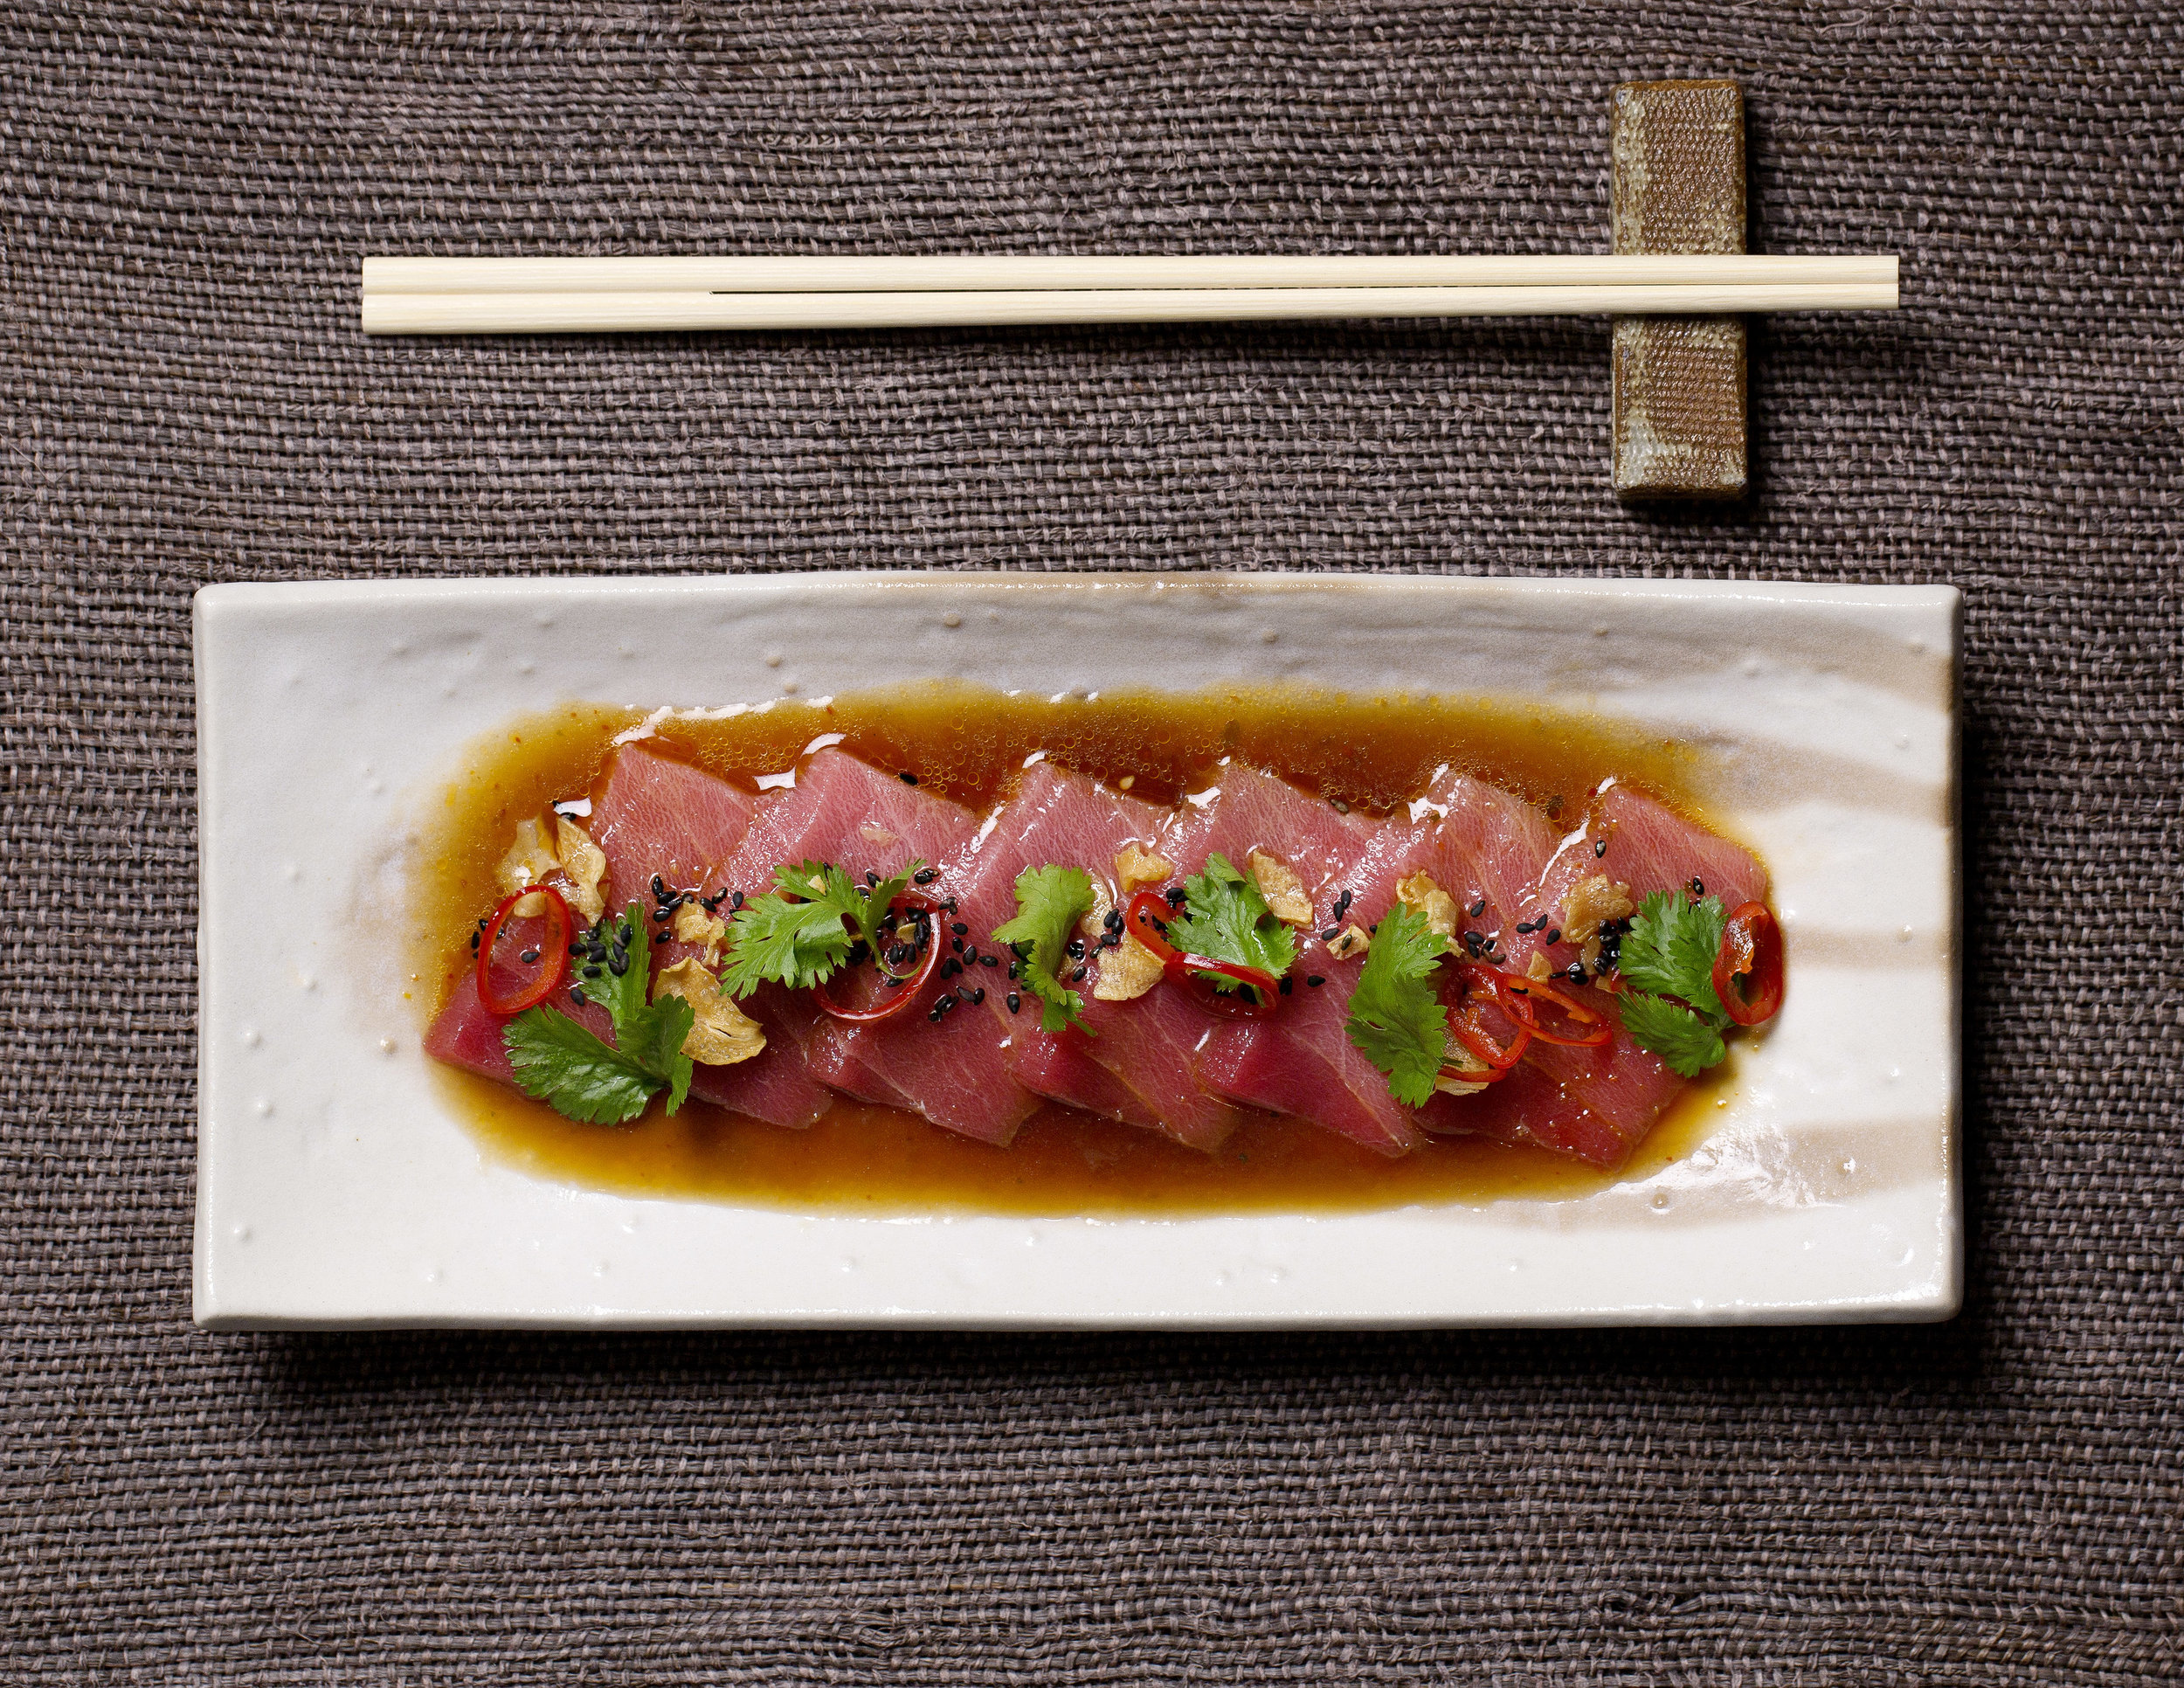 thinly sliced semi fatty tuna, chilli, coriander and sesame - chu toro no oasashimi kousou fuumi.jpg